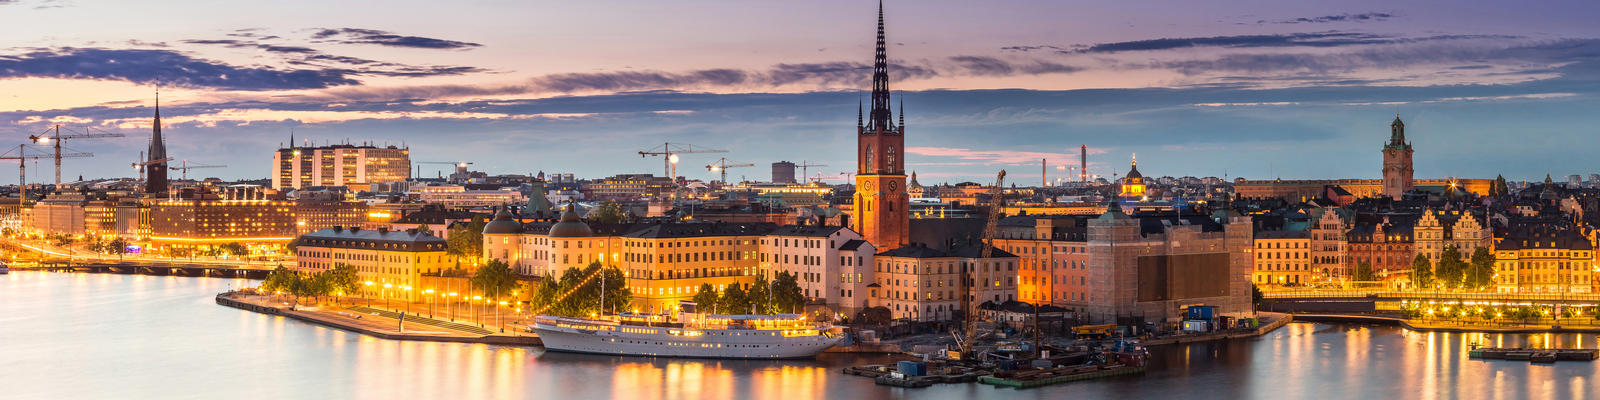 Stockholm, Sweden (Photo:  S-F/Shutterstock)